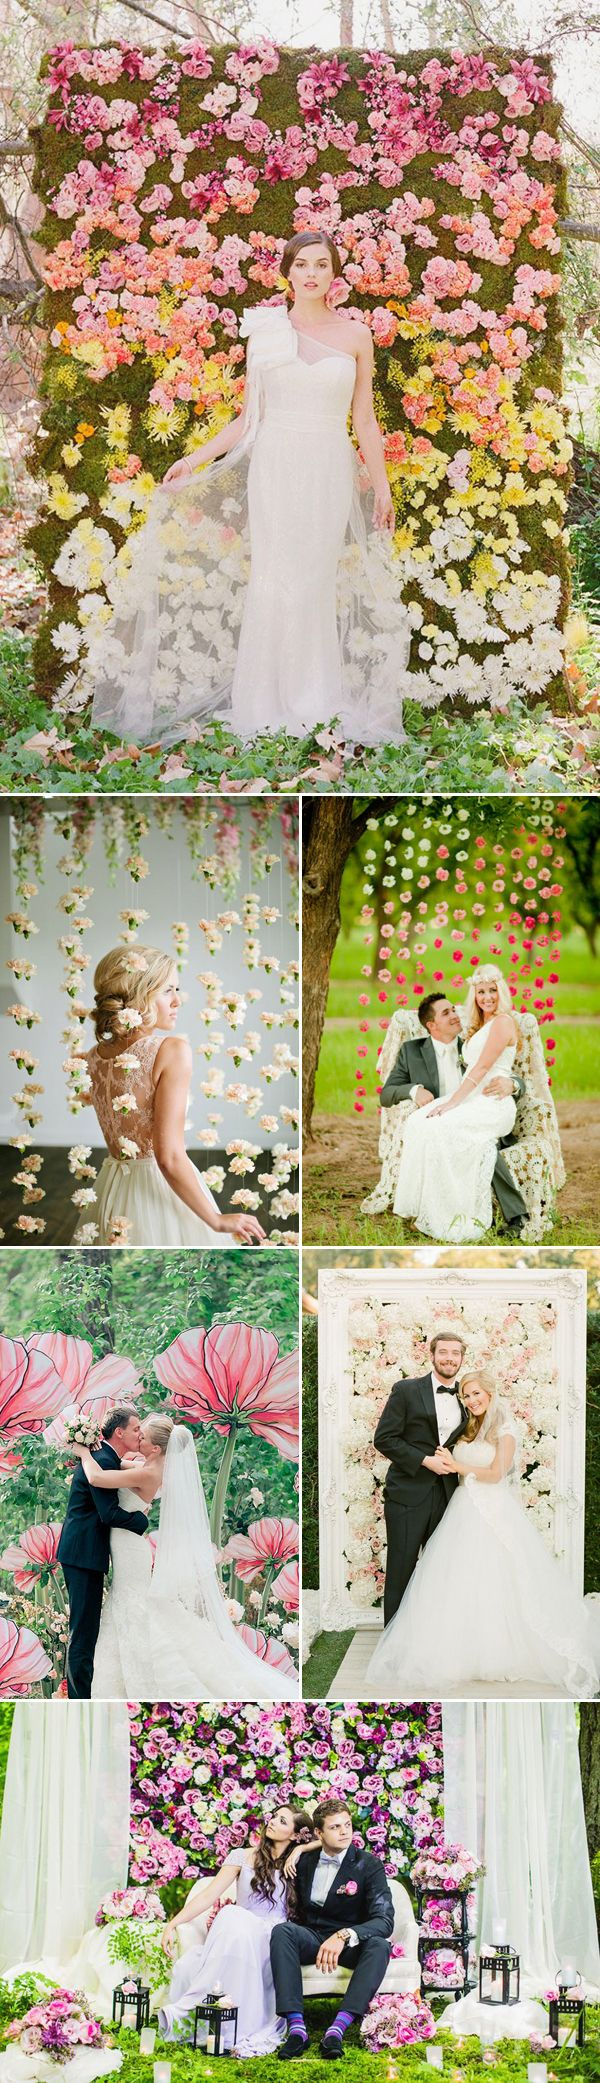 Wedding decoration ideas backdrops   best images about All About Wedding on Pinterest